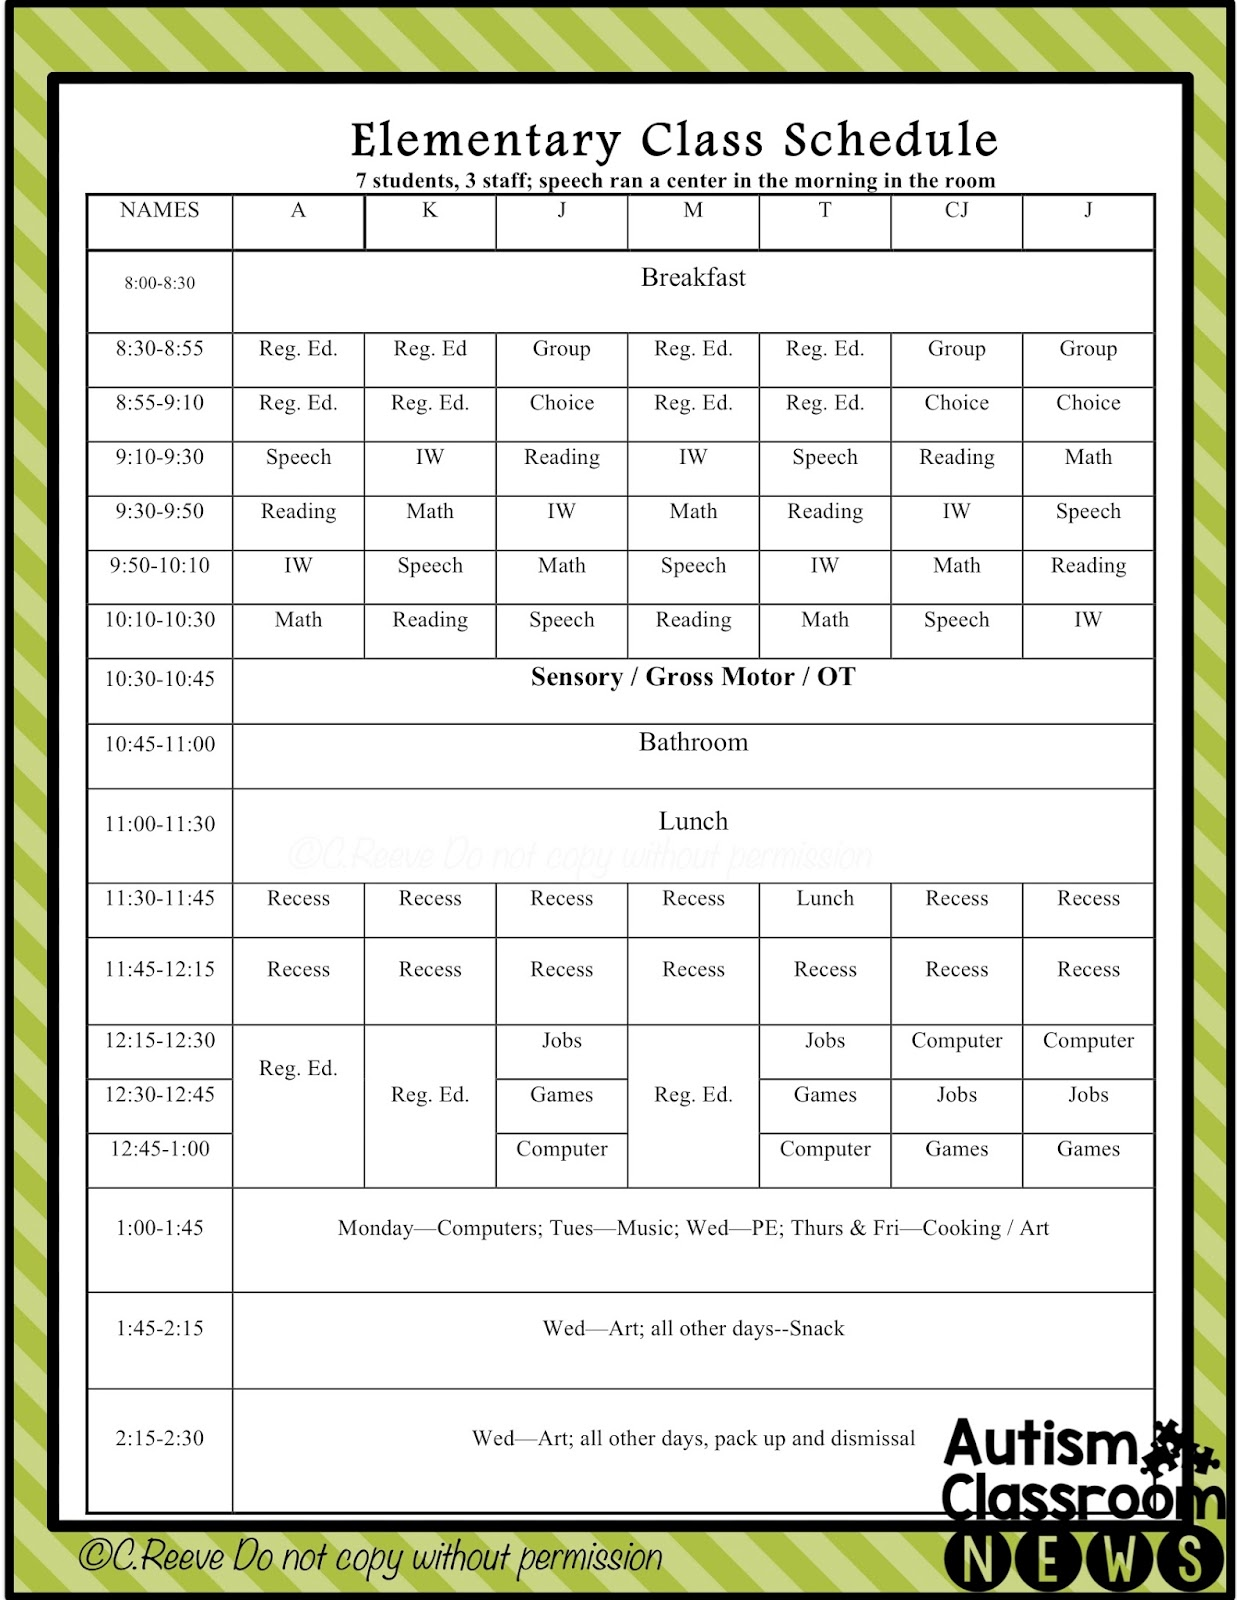 Elementary Classroom Schedule Template ~ Examples of setting classroom schedules in special